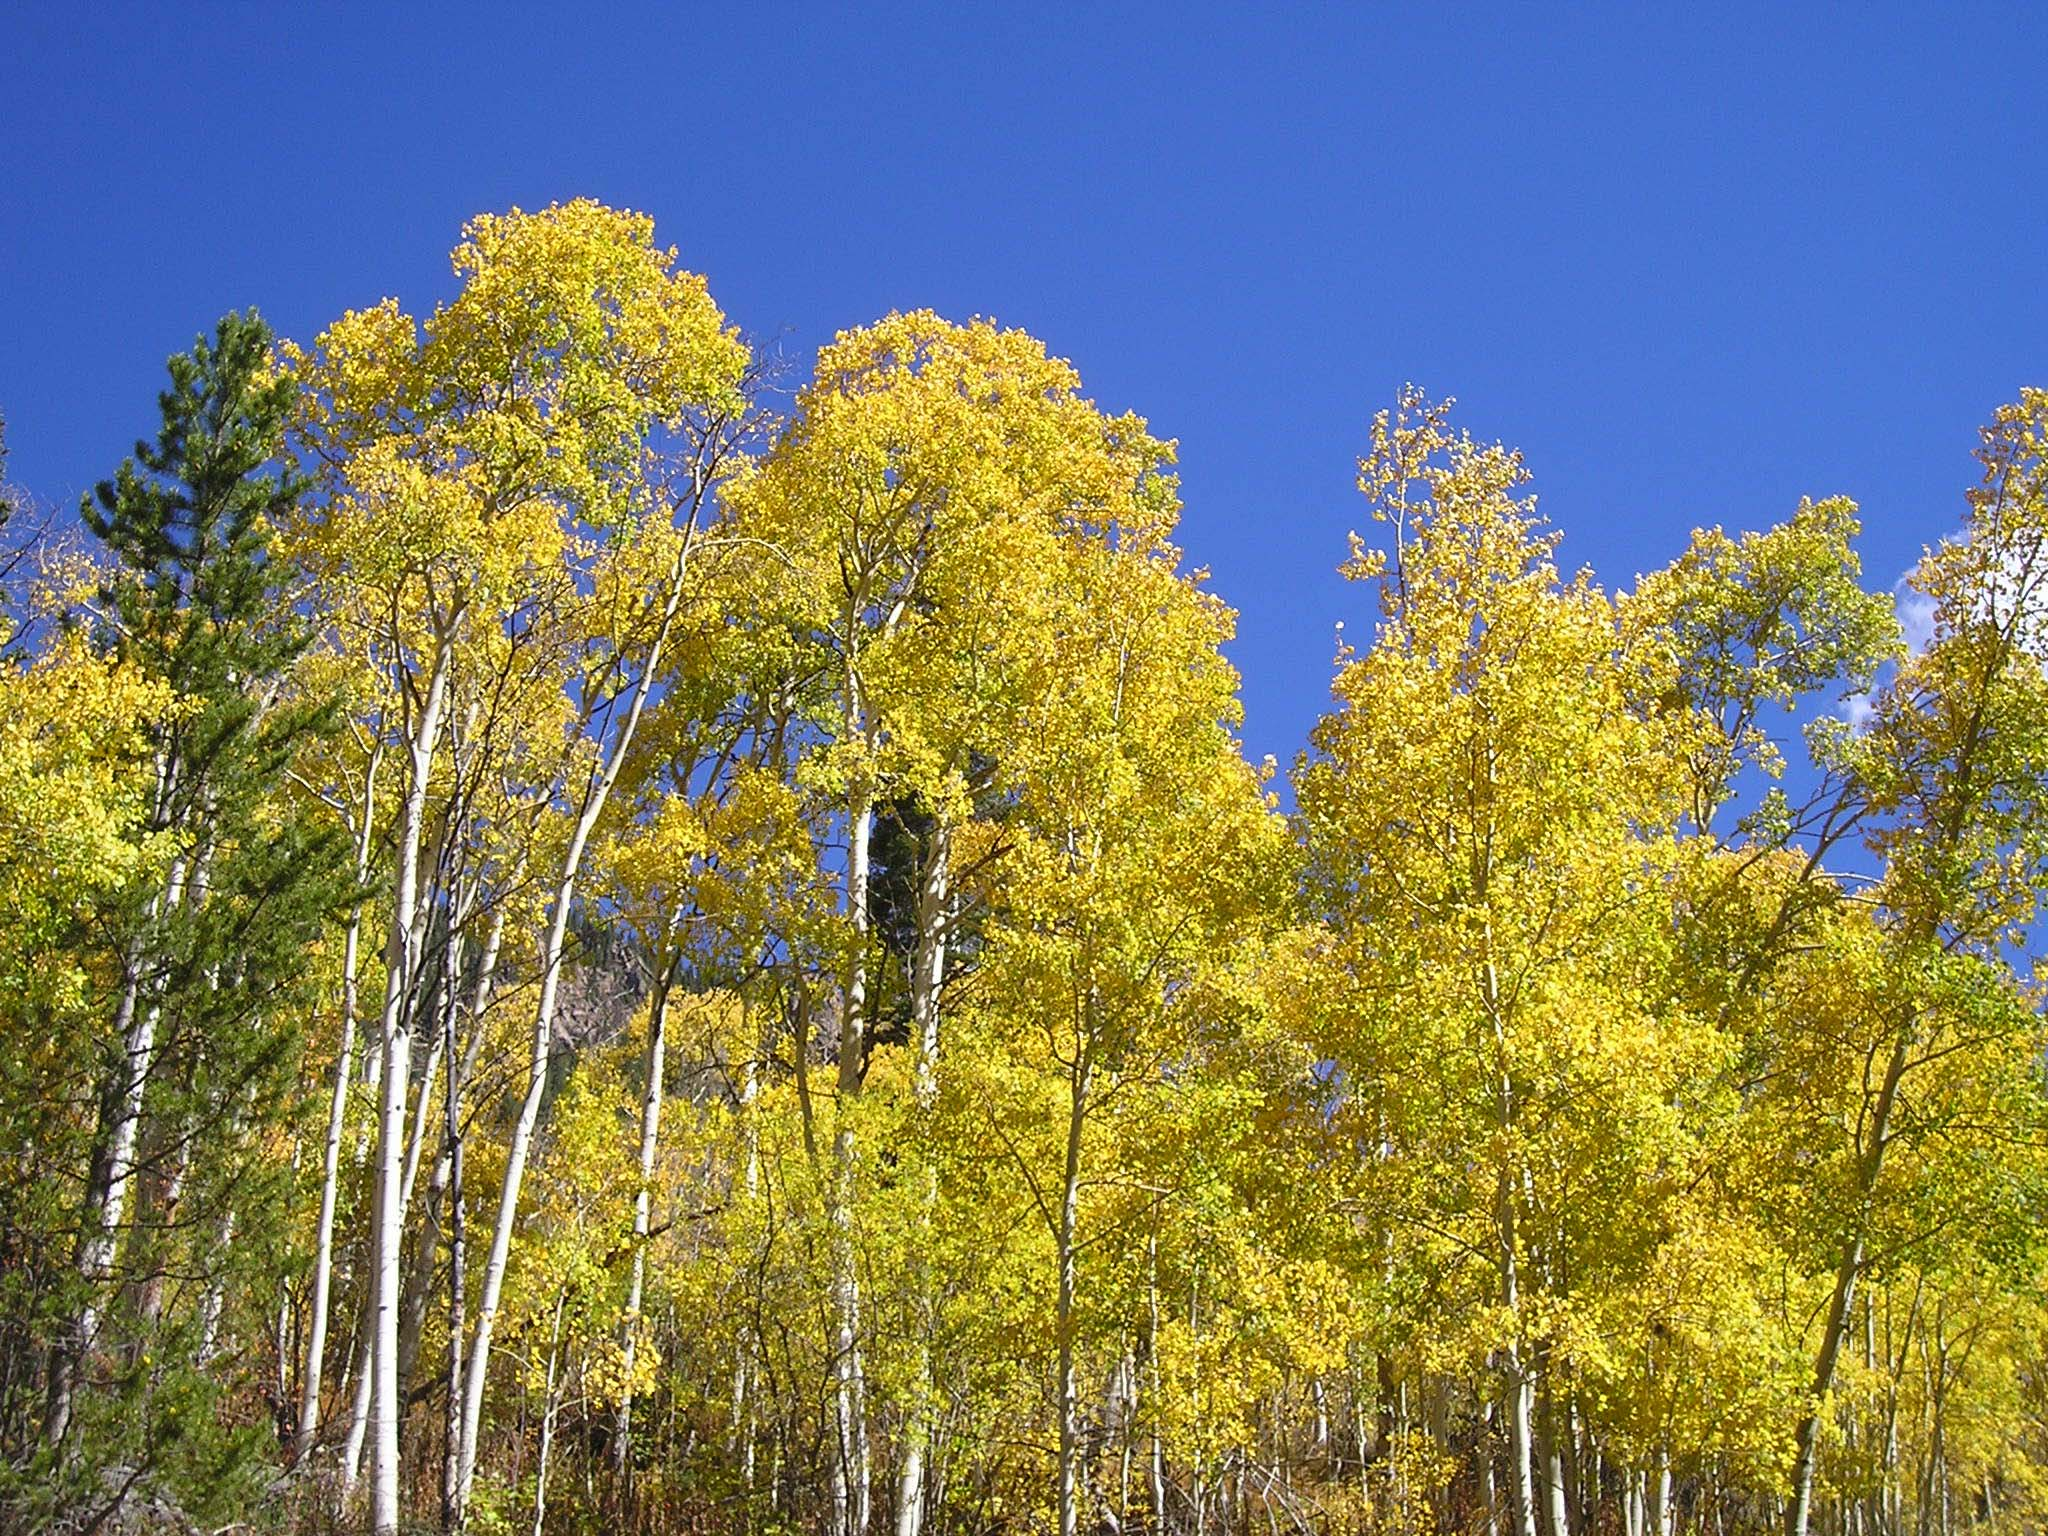 Blue Sky and Golden Aspen - The Eagle River Preserve, Edwards, Colorado